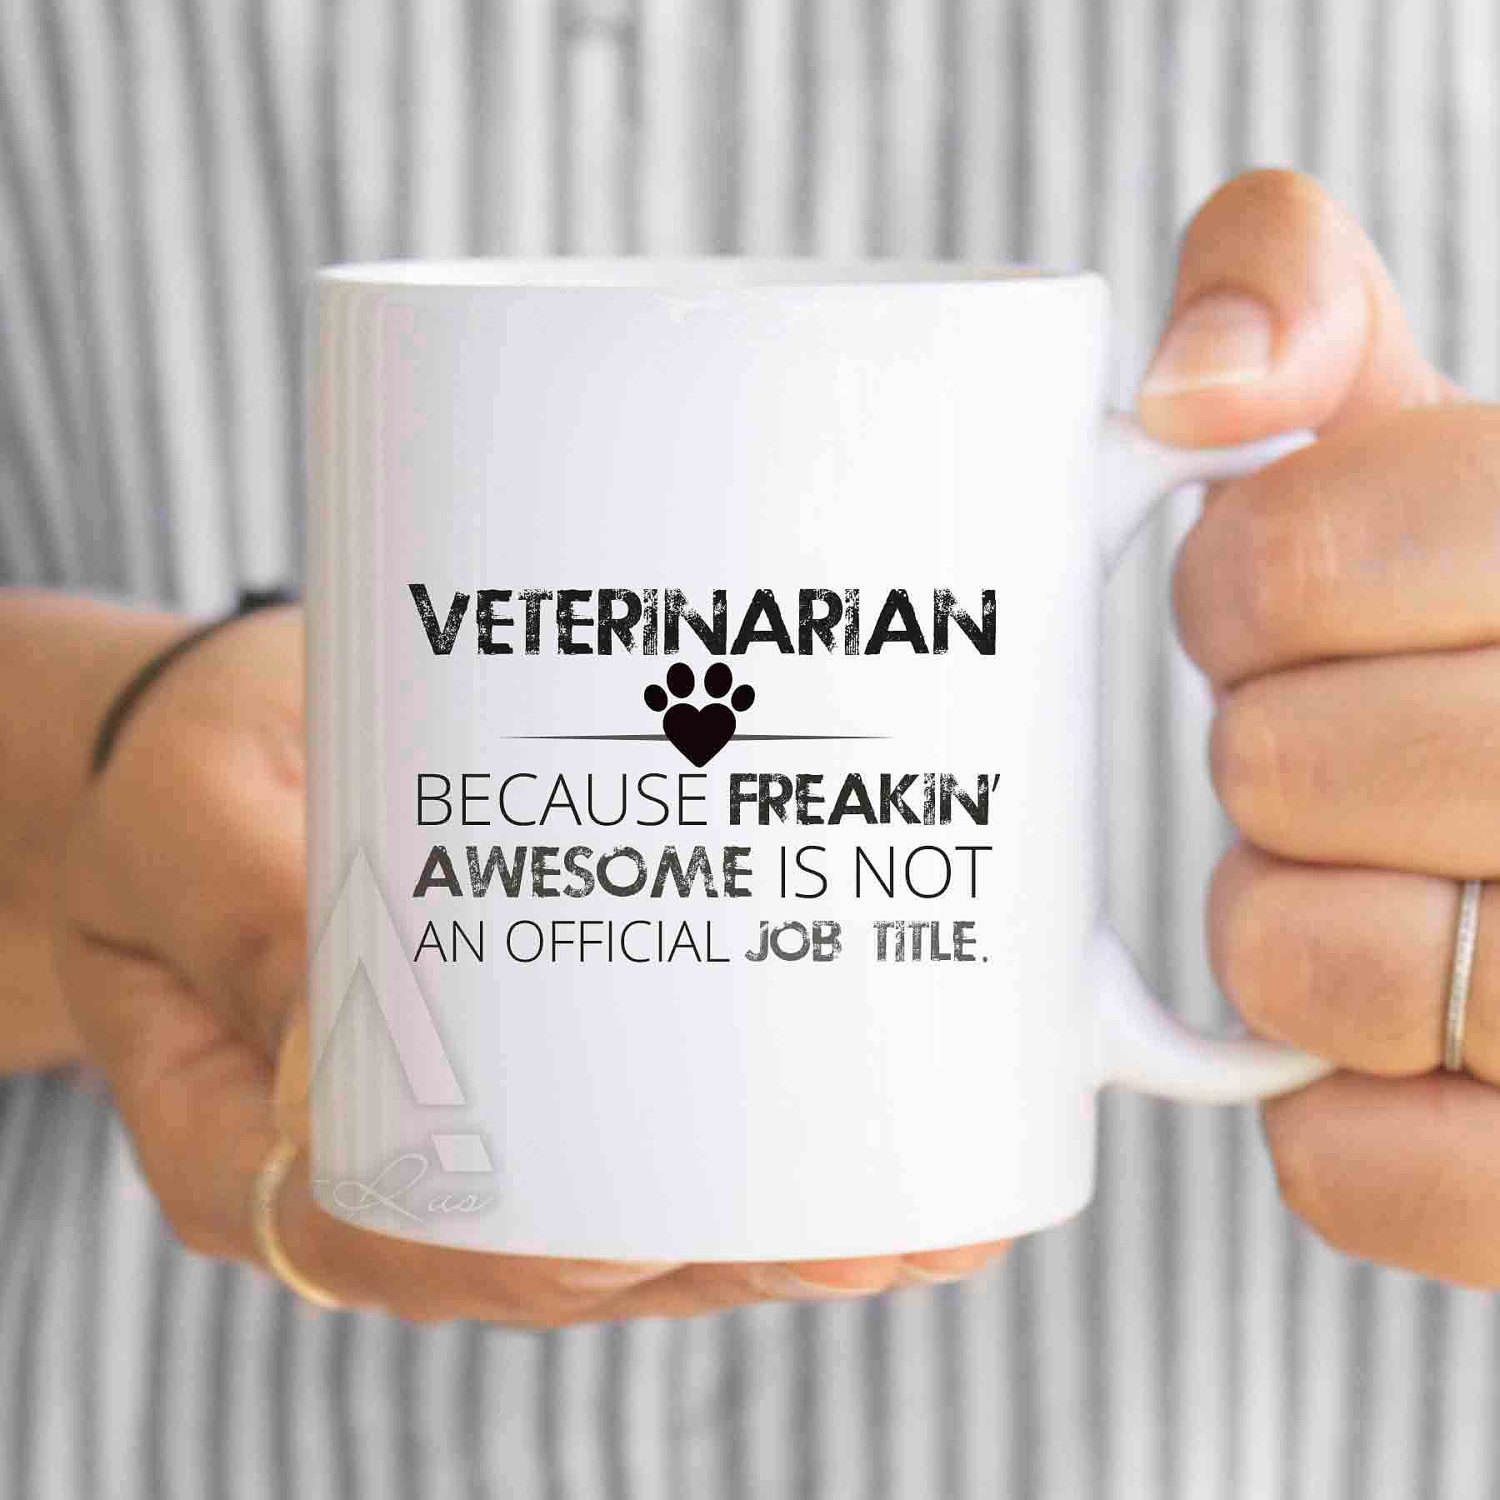 veterinarian because freakin awesome is not an official job title funny coffee mug christmas gifts for coworker gifts funny mug mu436 by artruss on etsy